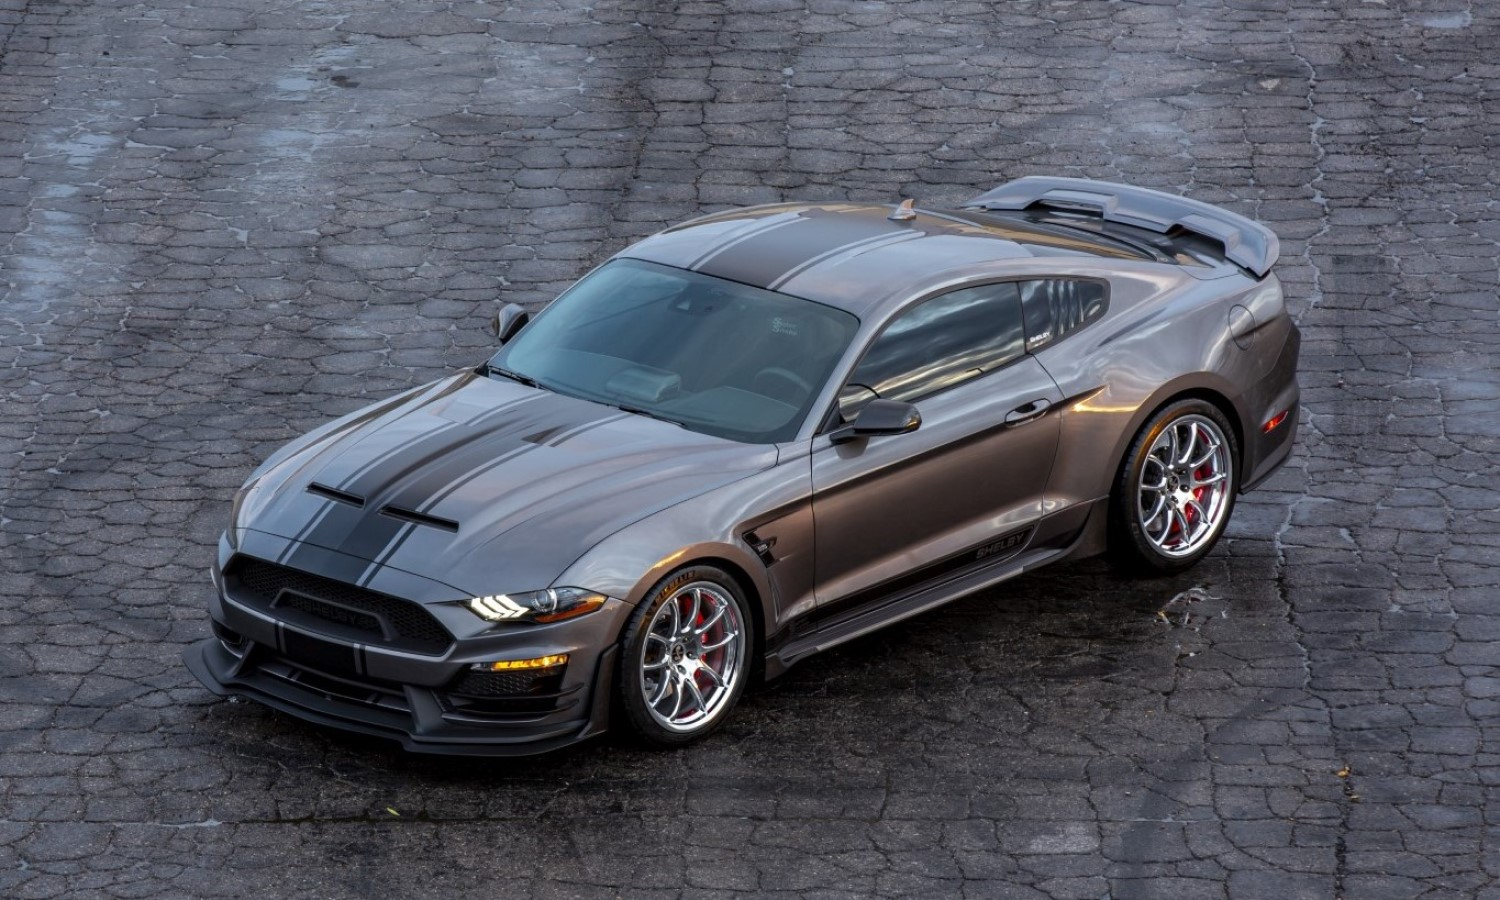 Mustang Shelby Super Snake coupe